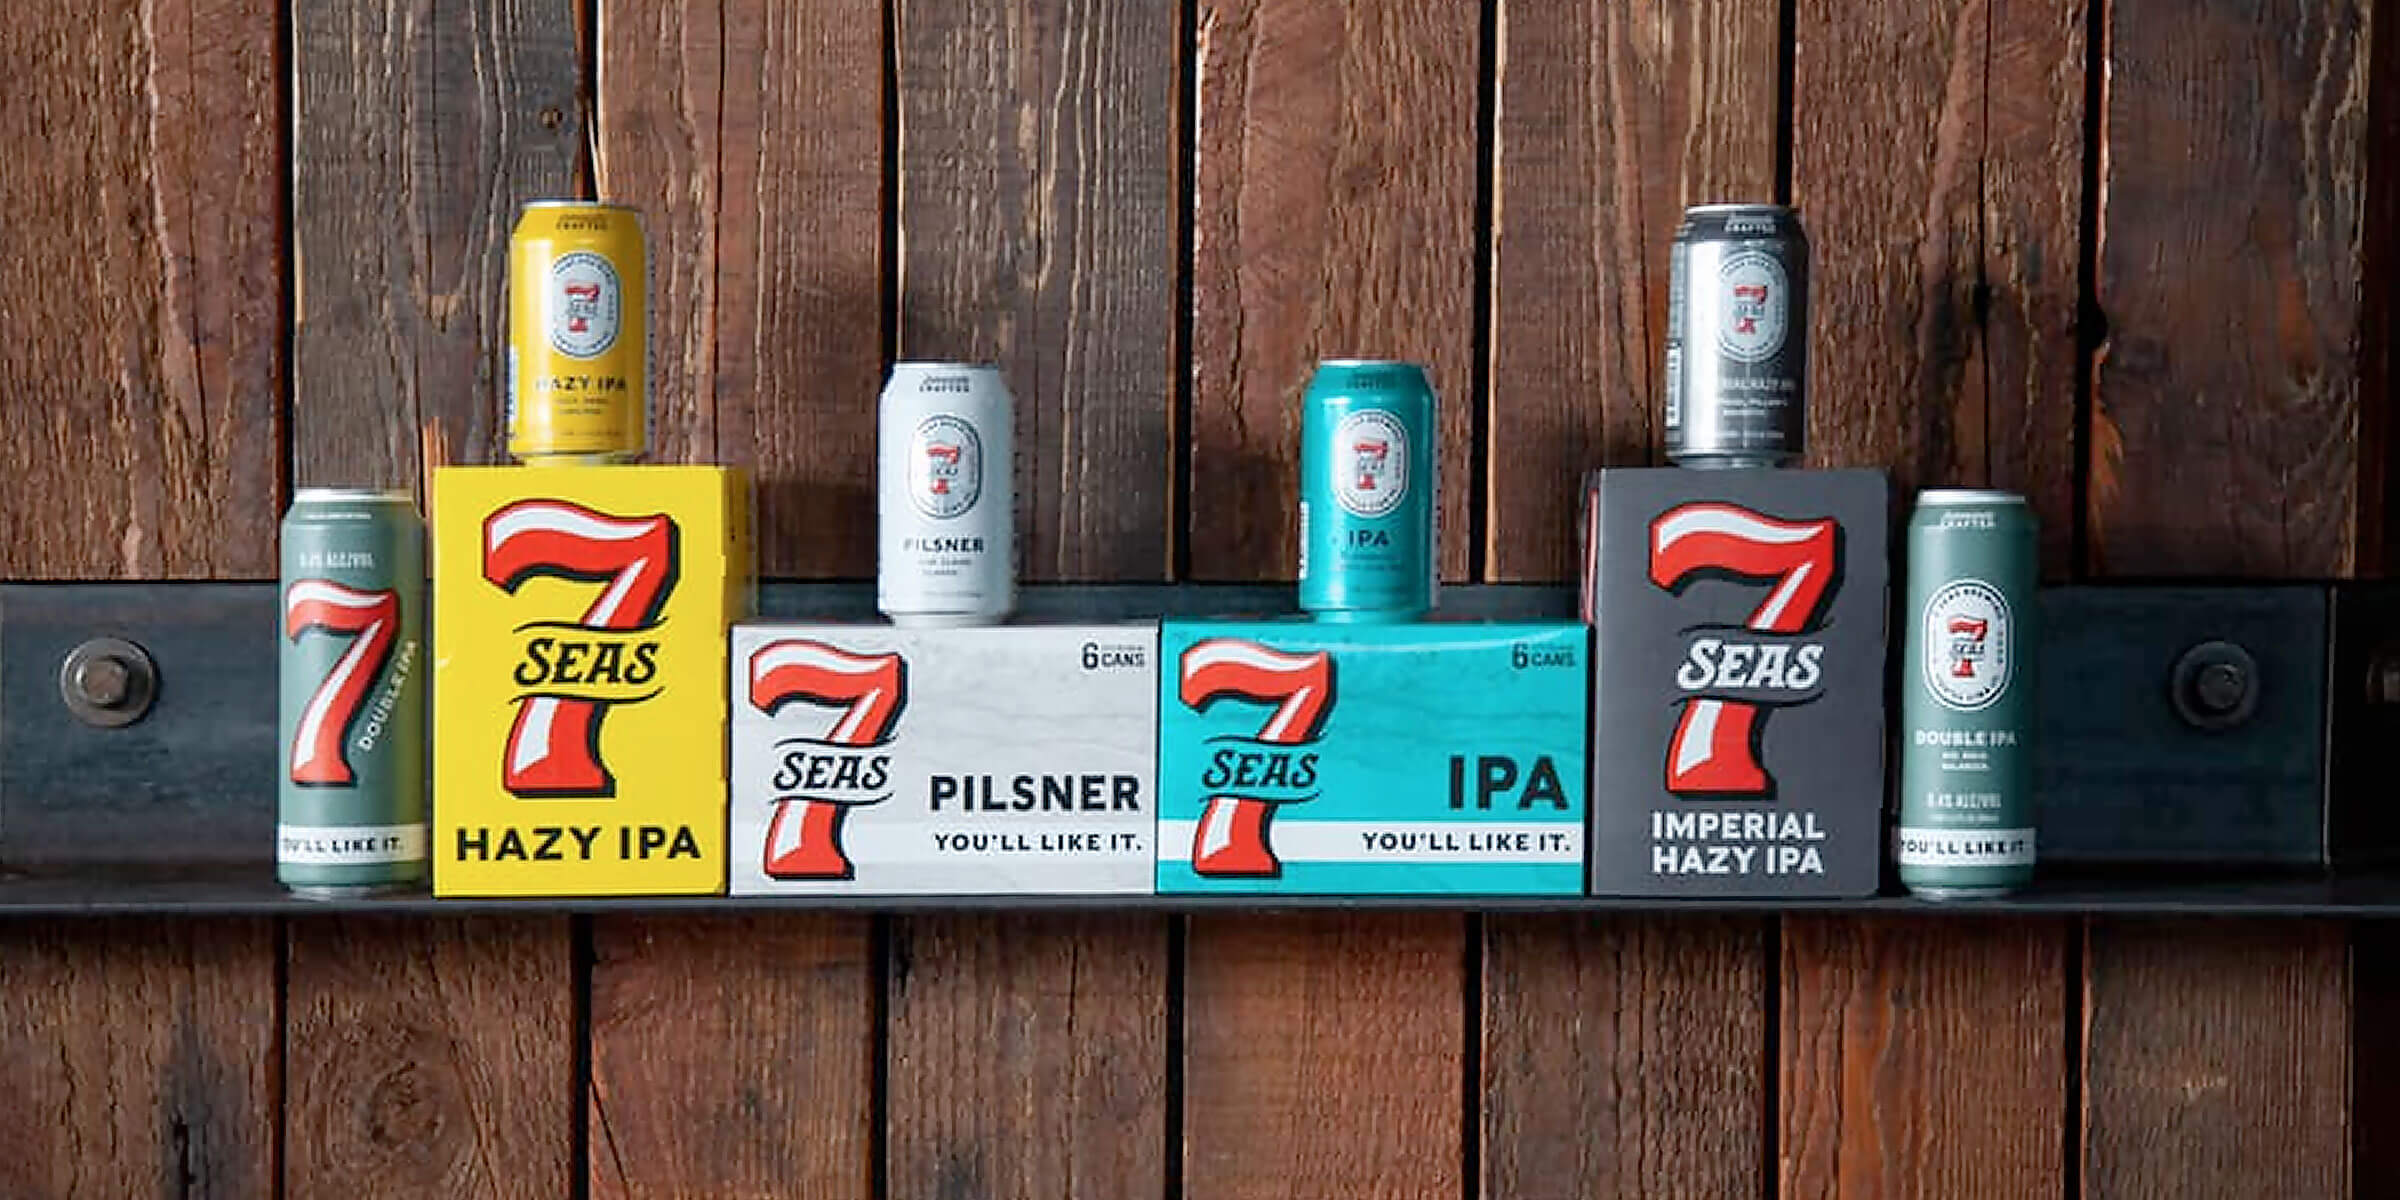 7 Seas Brewing unveiled updated branding and packaging in May 2020 after 10 years of independently crafting beer in the Pacific Northwest.